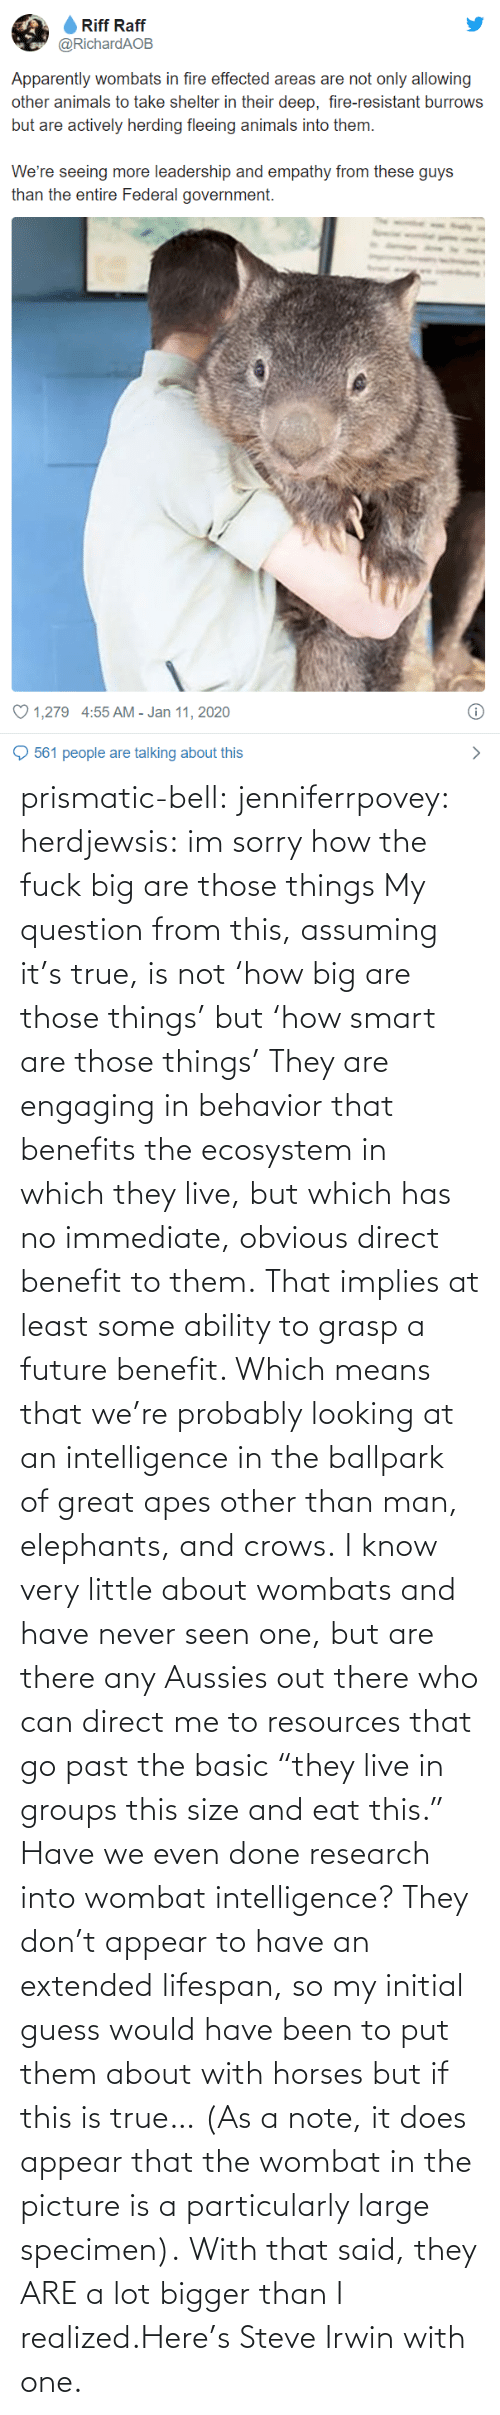 "great: prismatic-bell:  jenniferrpovey: herdjewsis: im sorry how the fuck big are those things My question from this, assuming it's true, is not 'how big are those things' but 'how smart are those things' They are engaging in behavior that benefits the ecosystem in which they live, but which has no immediate, obvious direct benefit to them. That implies at least some ability to grasp a future benefit. Which means that we're probably looking at an intelligence in the ballpark of great apes other than man, elephants, and crows. I know very little about wombats and have never seen one, but are there any Aussies out there who can direct me to resources that go past the basic ""they live in groups this size and eat this."" Have we even done research into wombat intelligence? They don't appear to have an extended lifespan, so my initial guess would have been to put them about with horses but if this is true… (As a note, it does appear that the wombat in the picture is a particularly large specimen).  With that said, they ARE a lot bigger than I realized.Here's Steve Irwin with one."